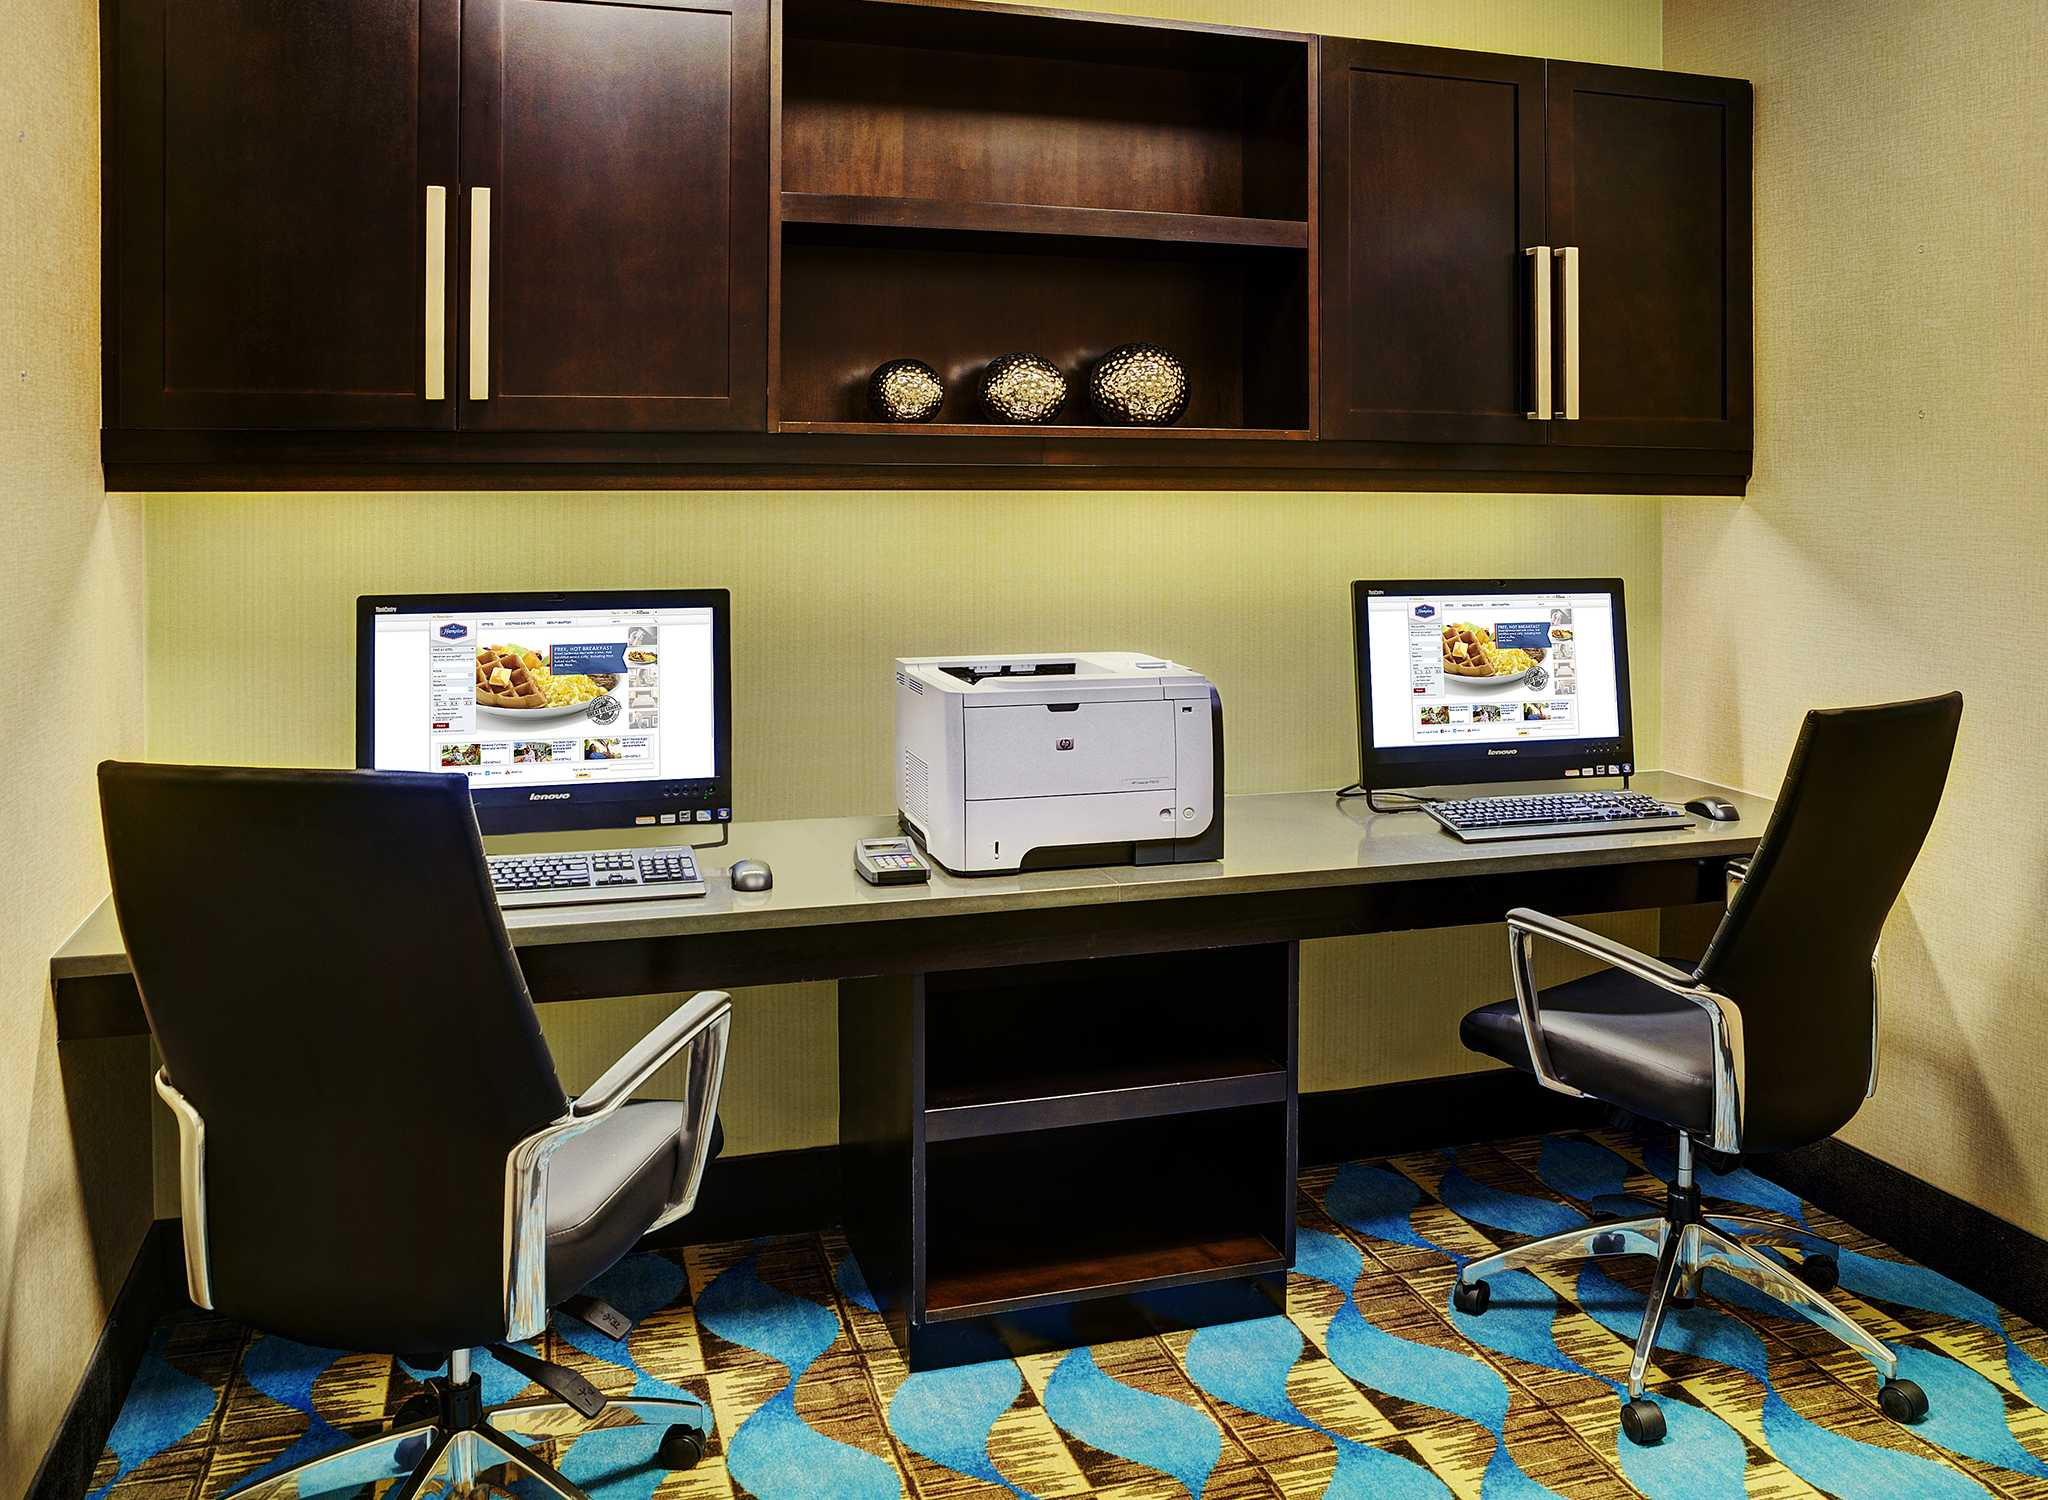 Hôtel Hampton Inn by Hilton Winnipeg Airport/Polo Park, Canada - Centre d'affaires